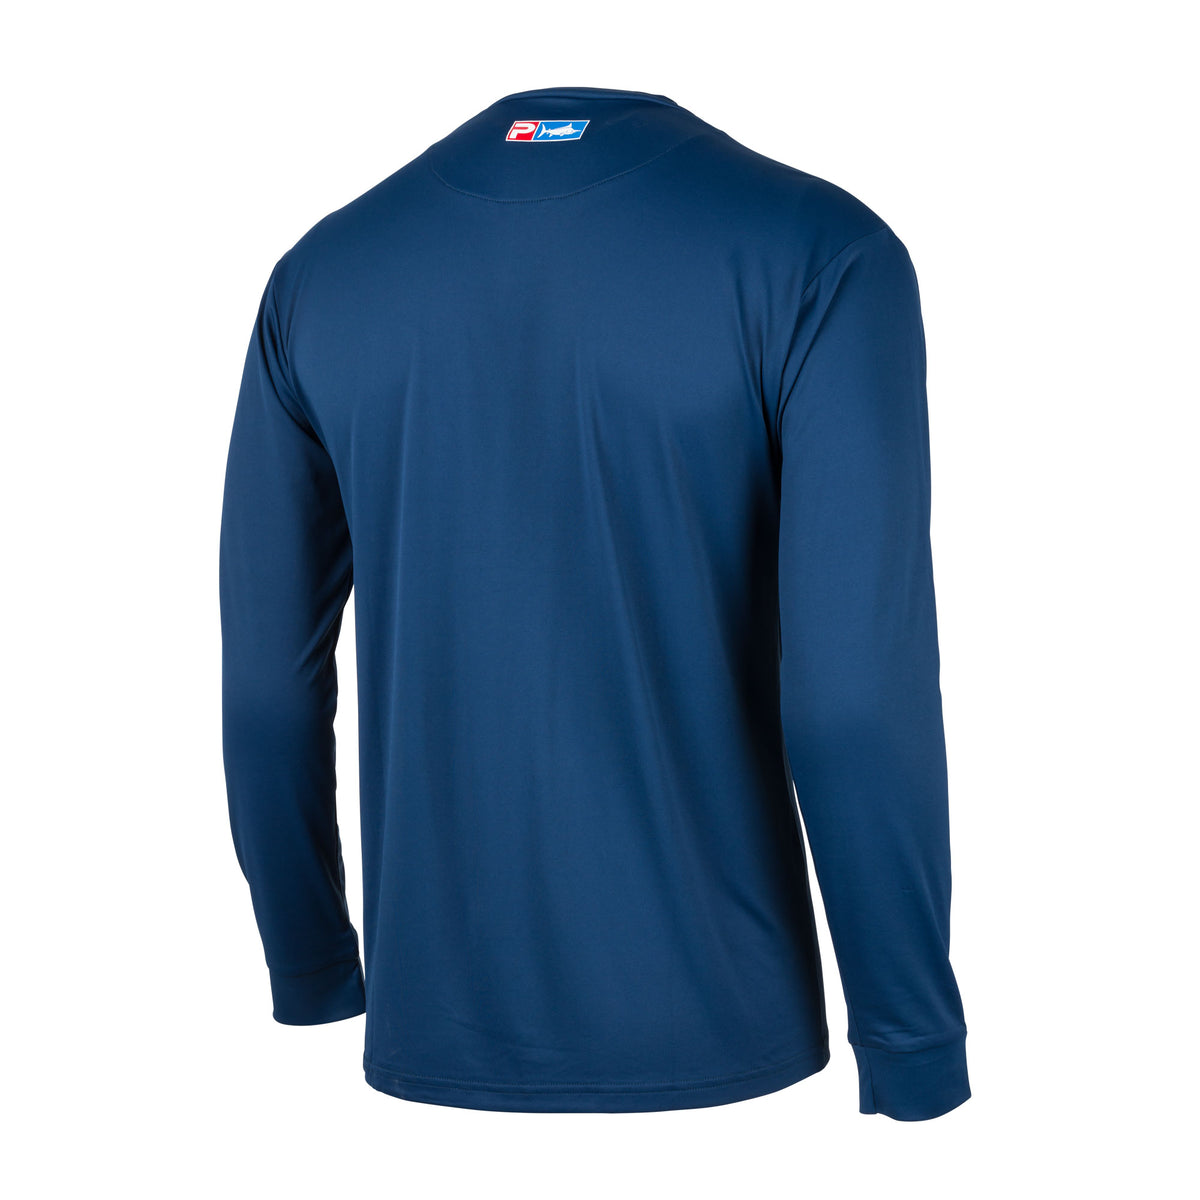 Aquatek Performance Fishing Shirt Big Image - 2